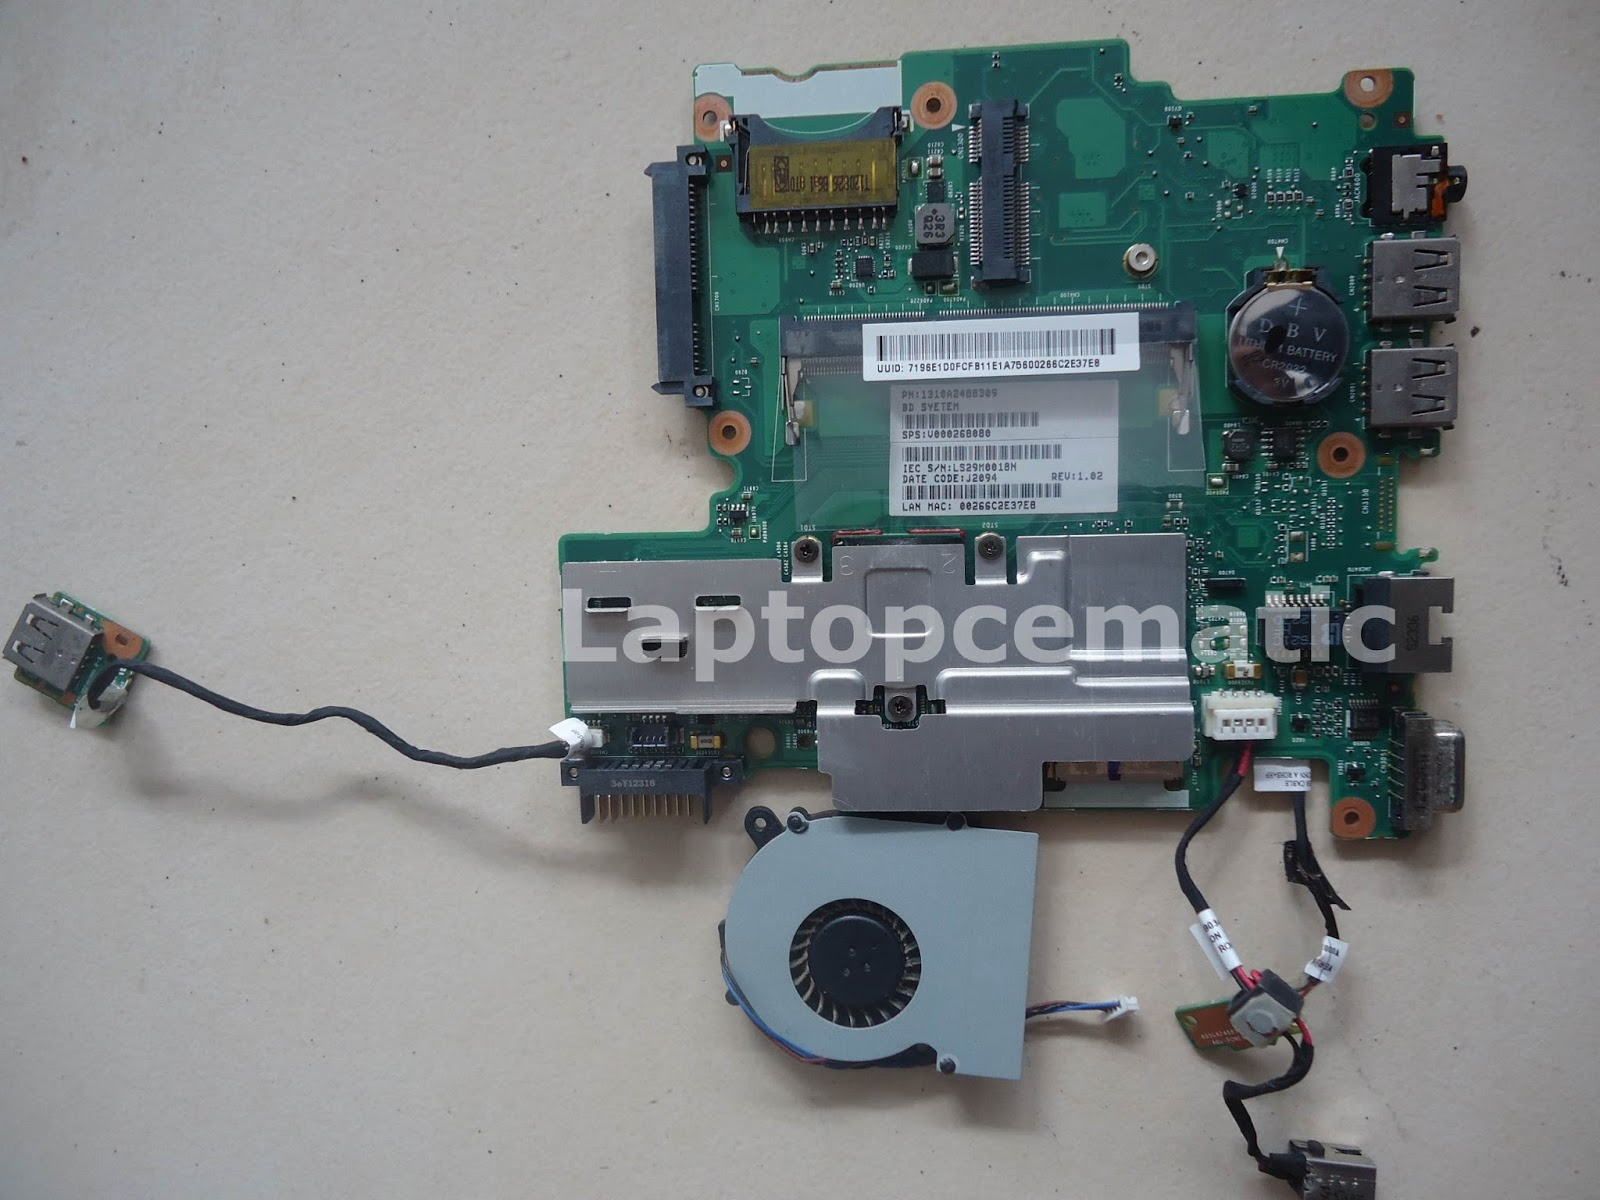 Pico Btx Motherboard Diagram Electrolux Wiring On Vacuum Toshiba Nb510 Mainboard Code 6050a2488301 Mb